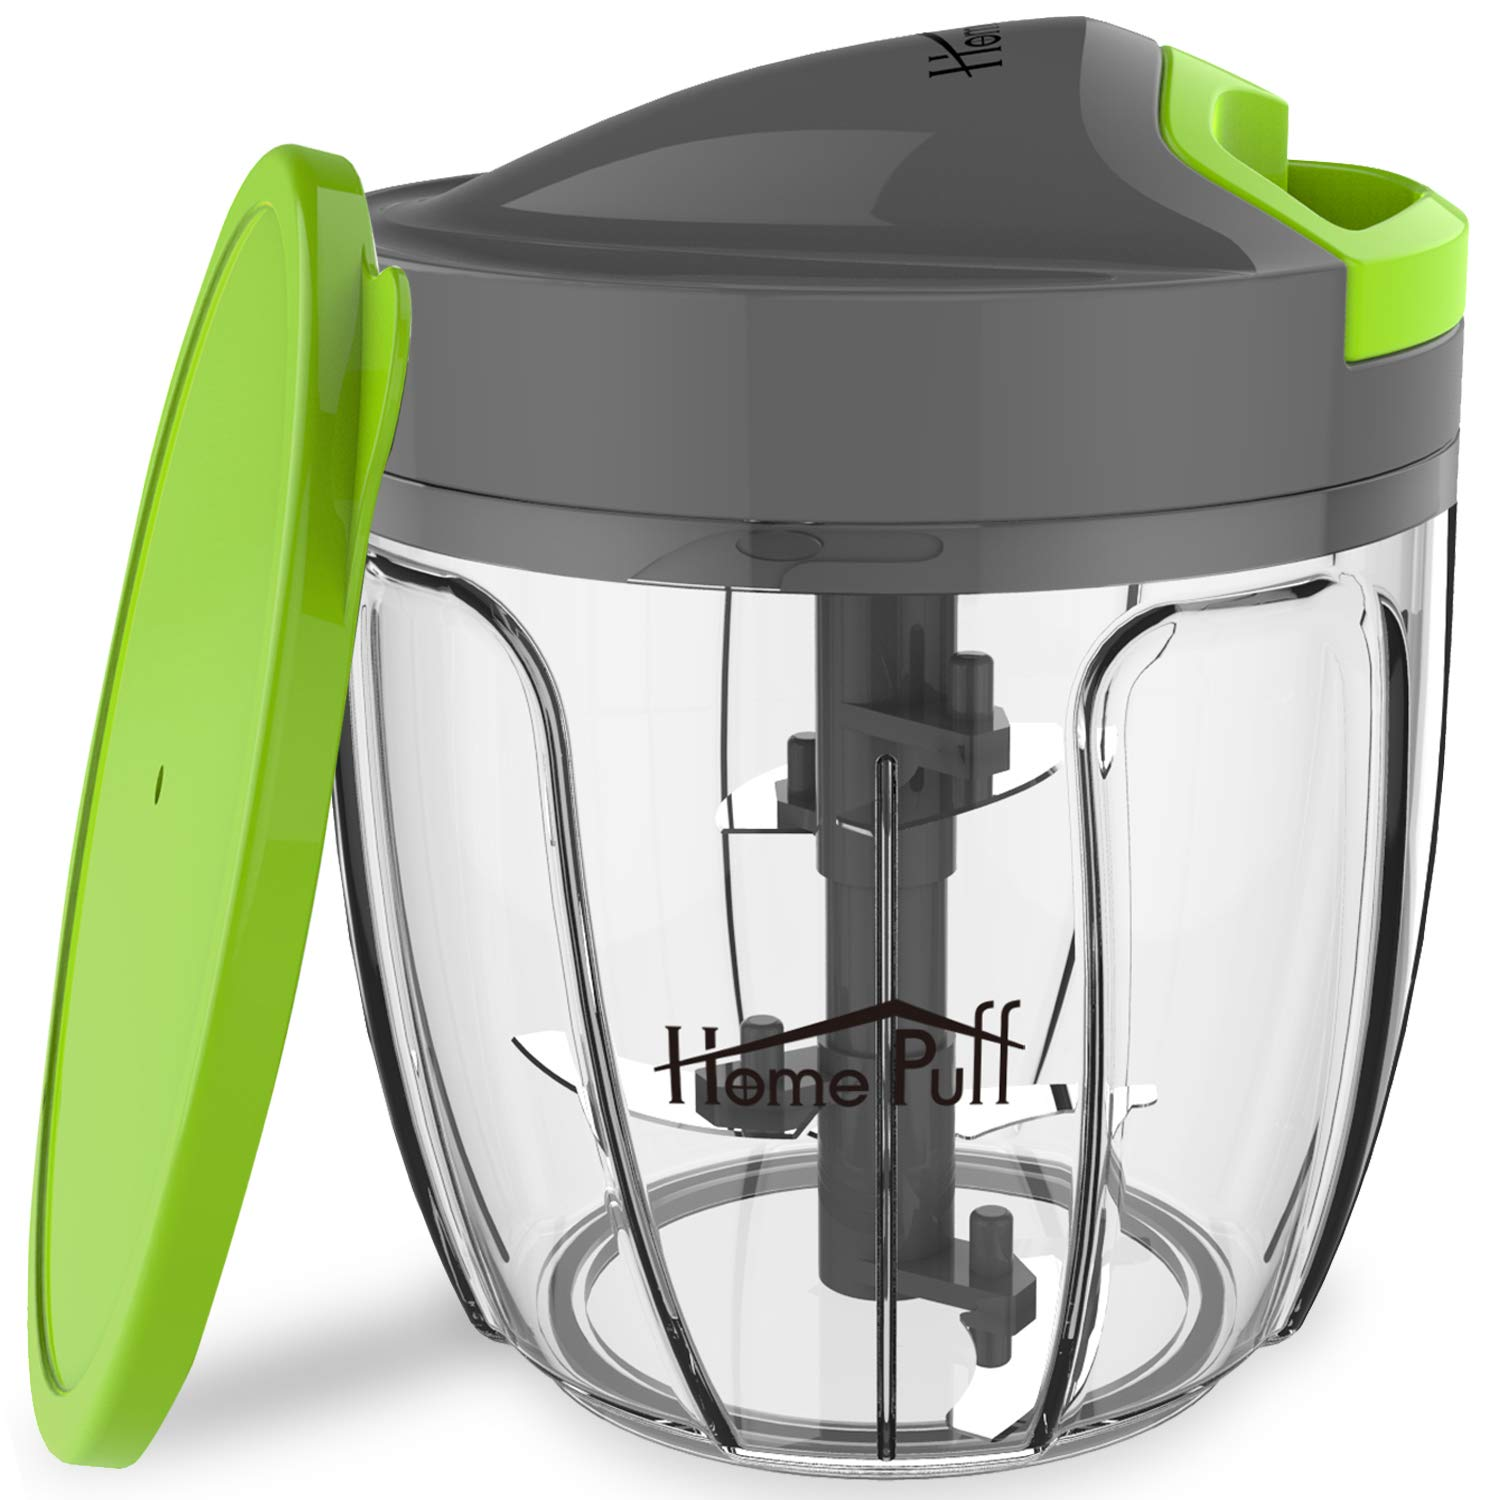 Home Puff Plastic 5 Blades Vegetable Chopper with Storage Lid, 900ml